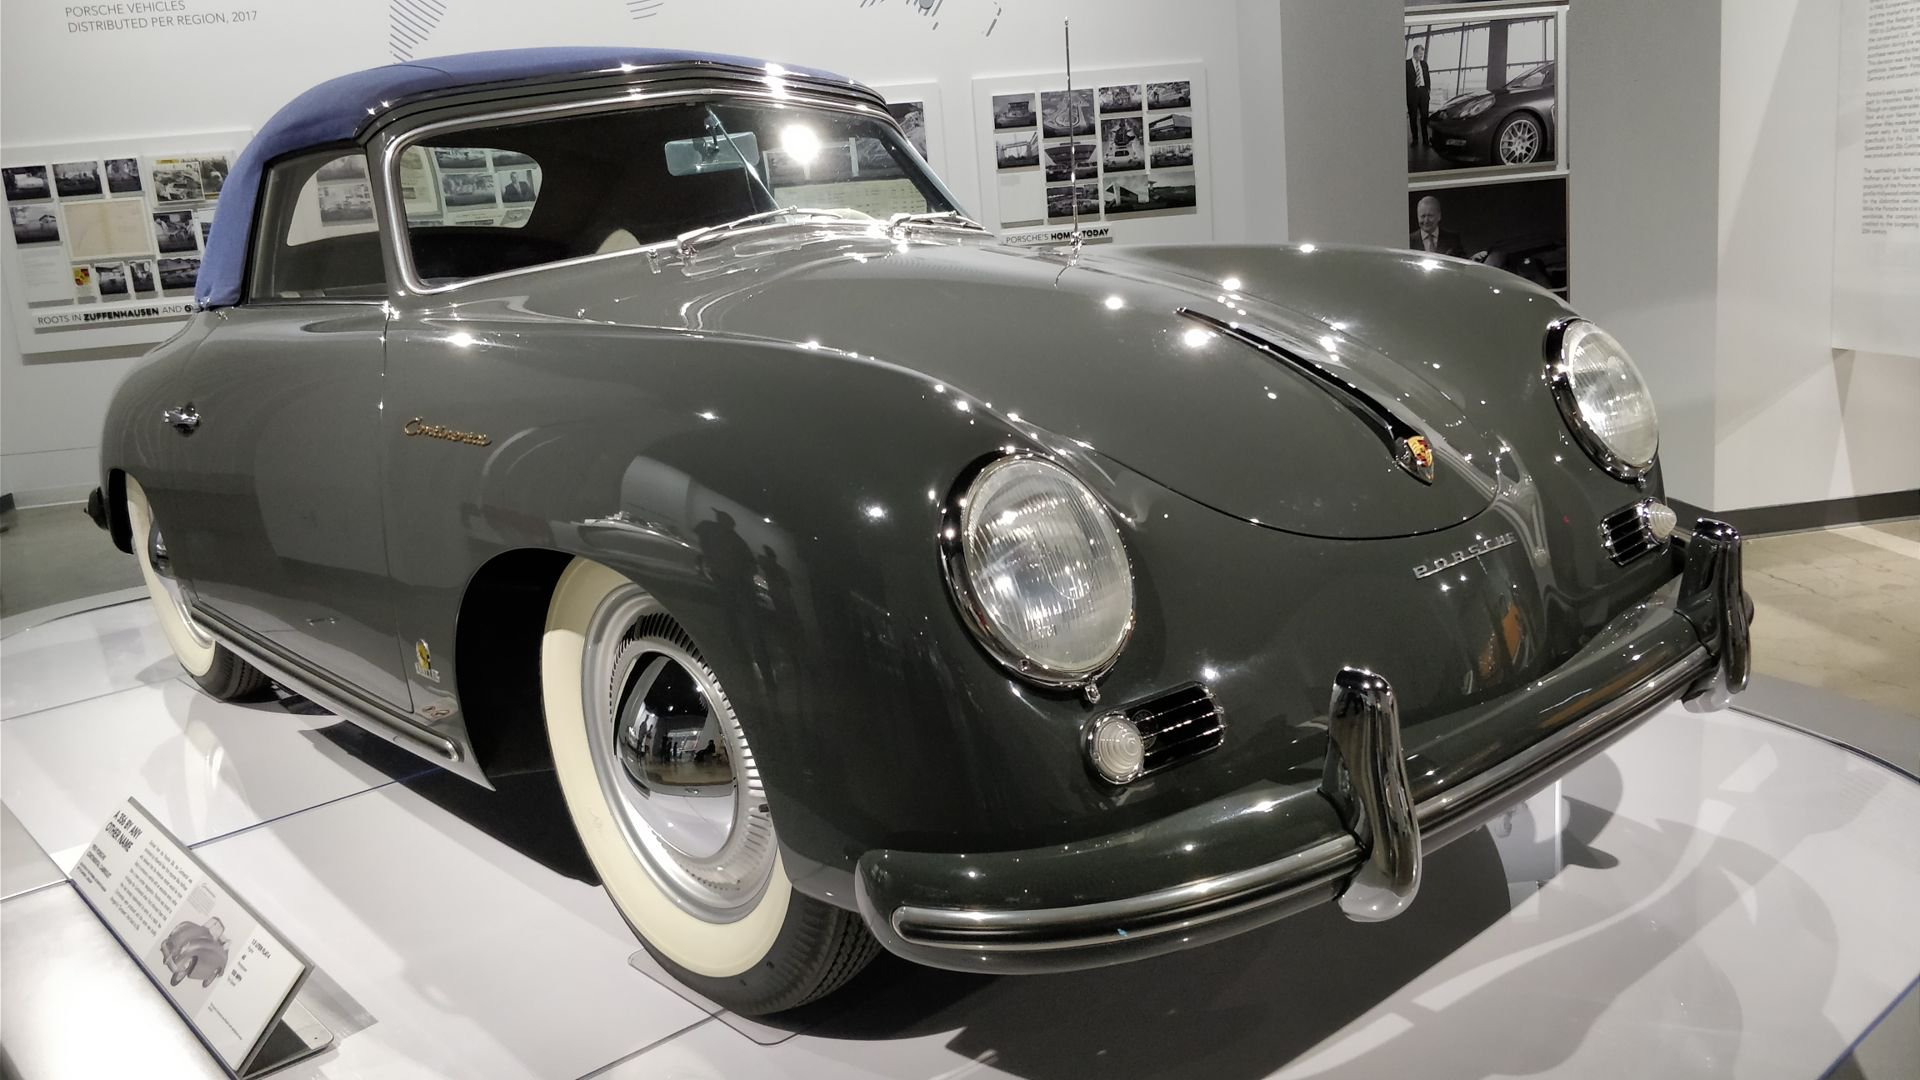 A photo I took at the Petersen Automotive Museum recently